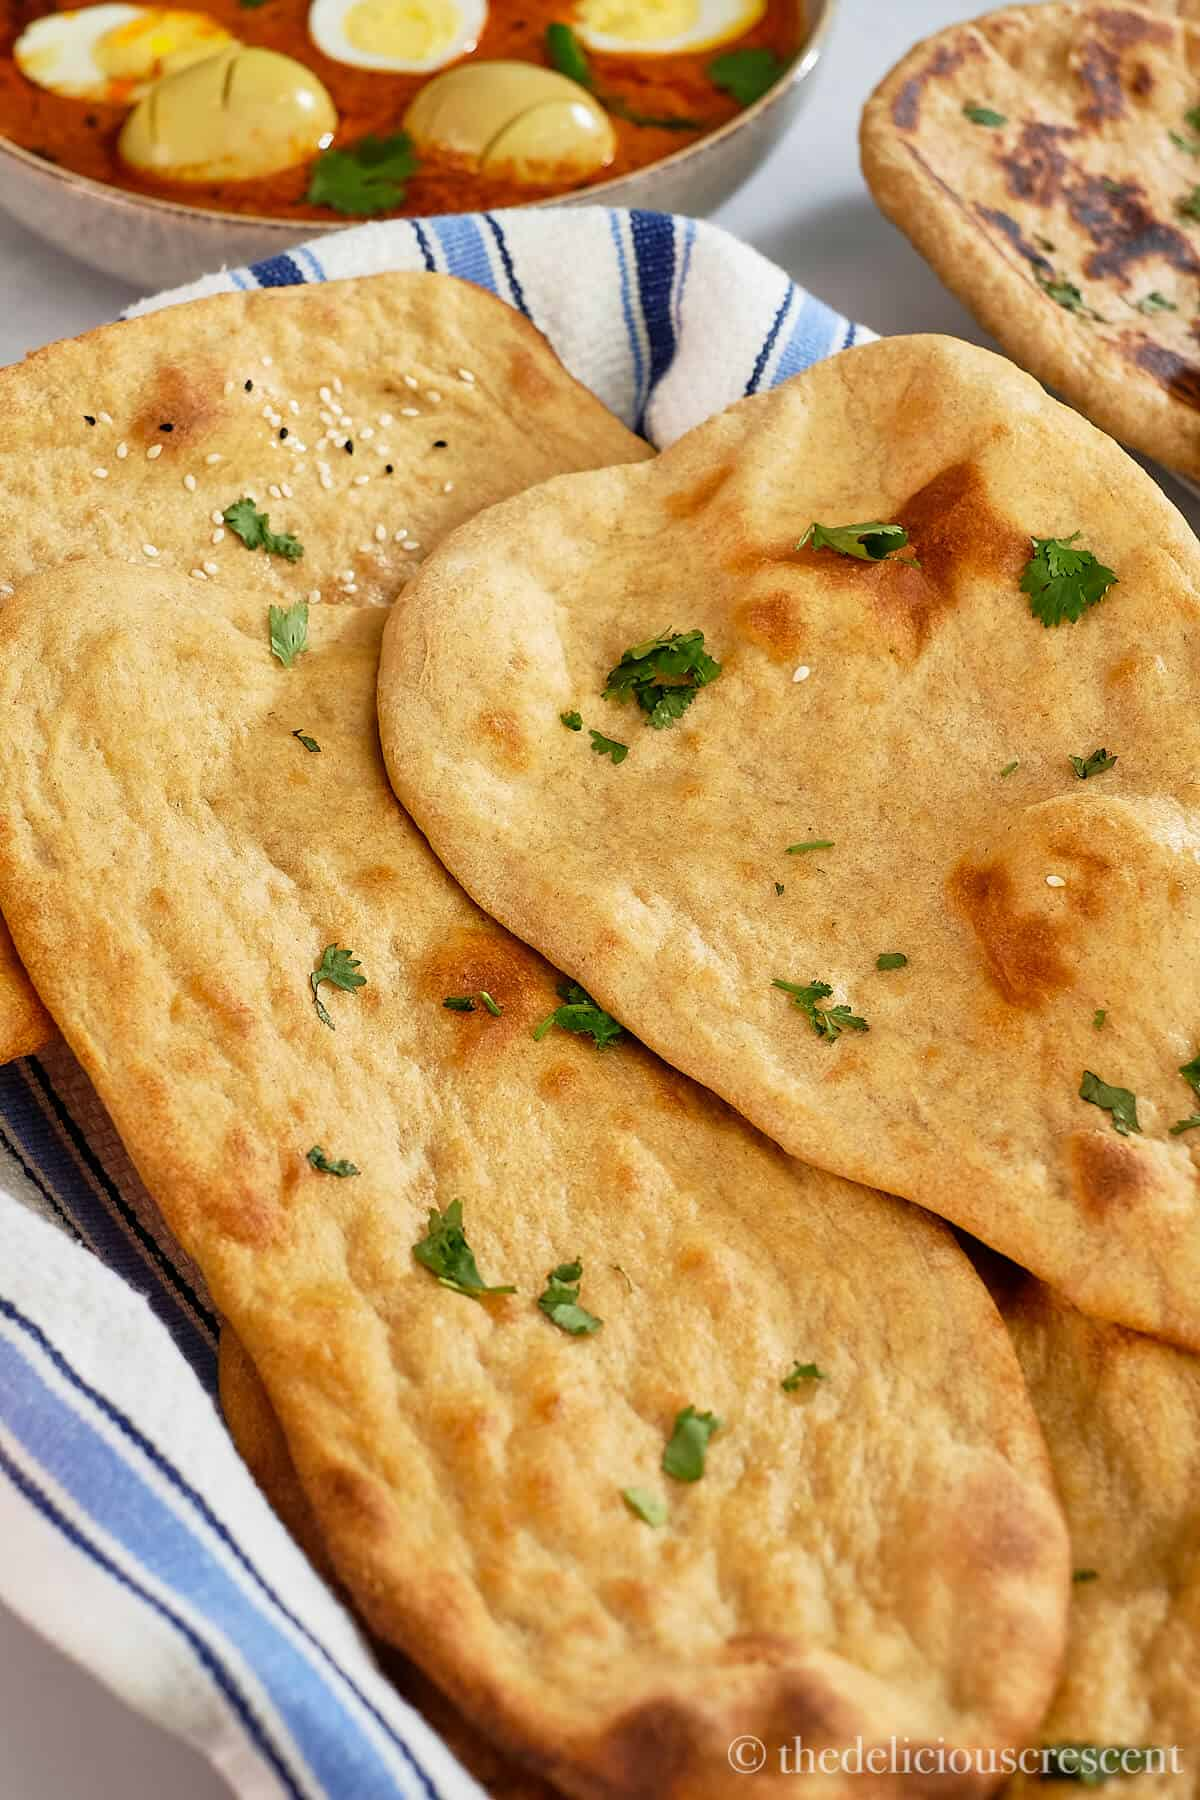 Two whole wheat naans on a kitchen towel.